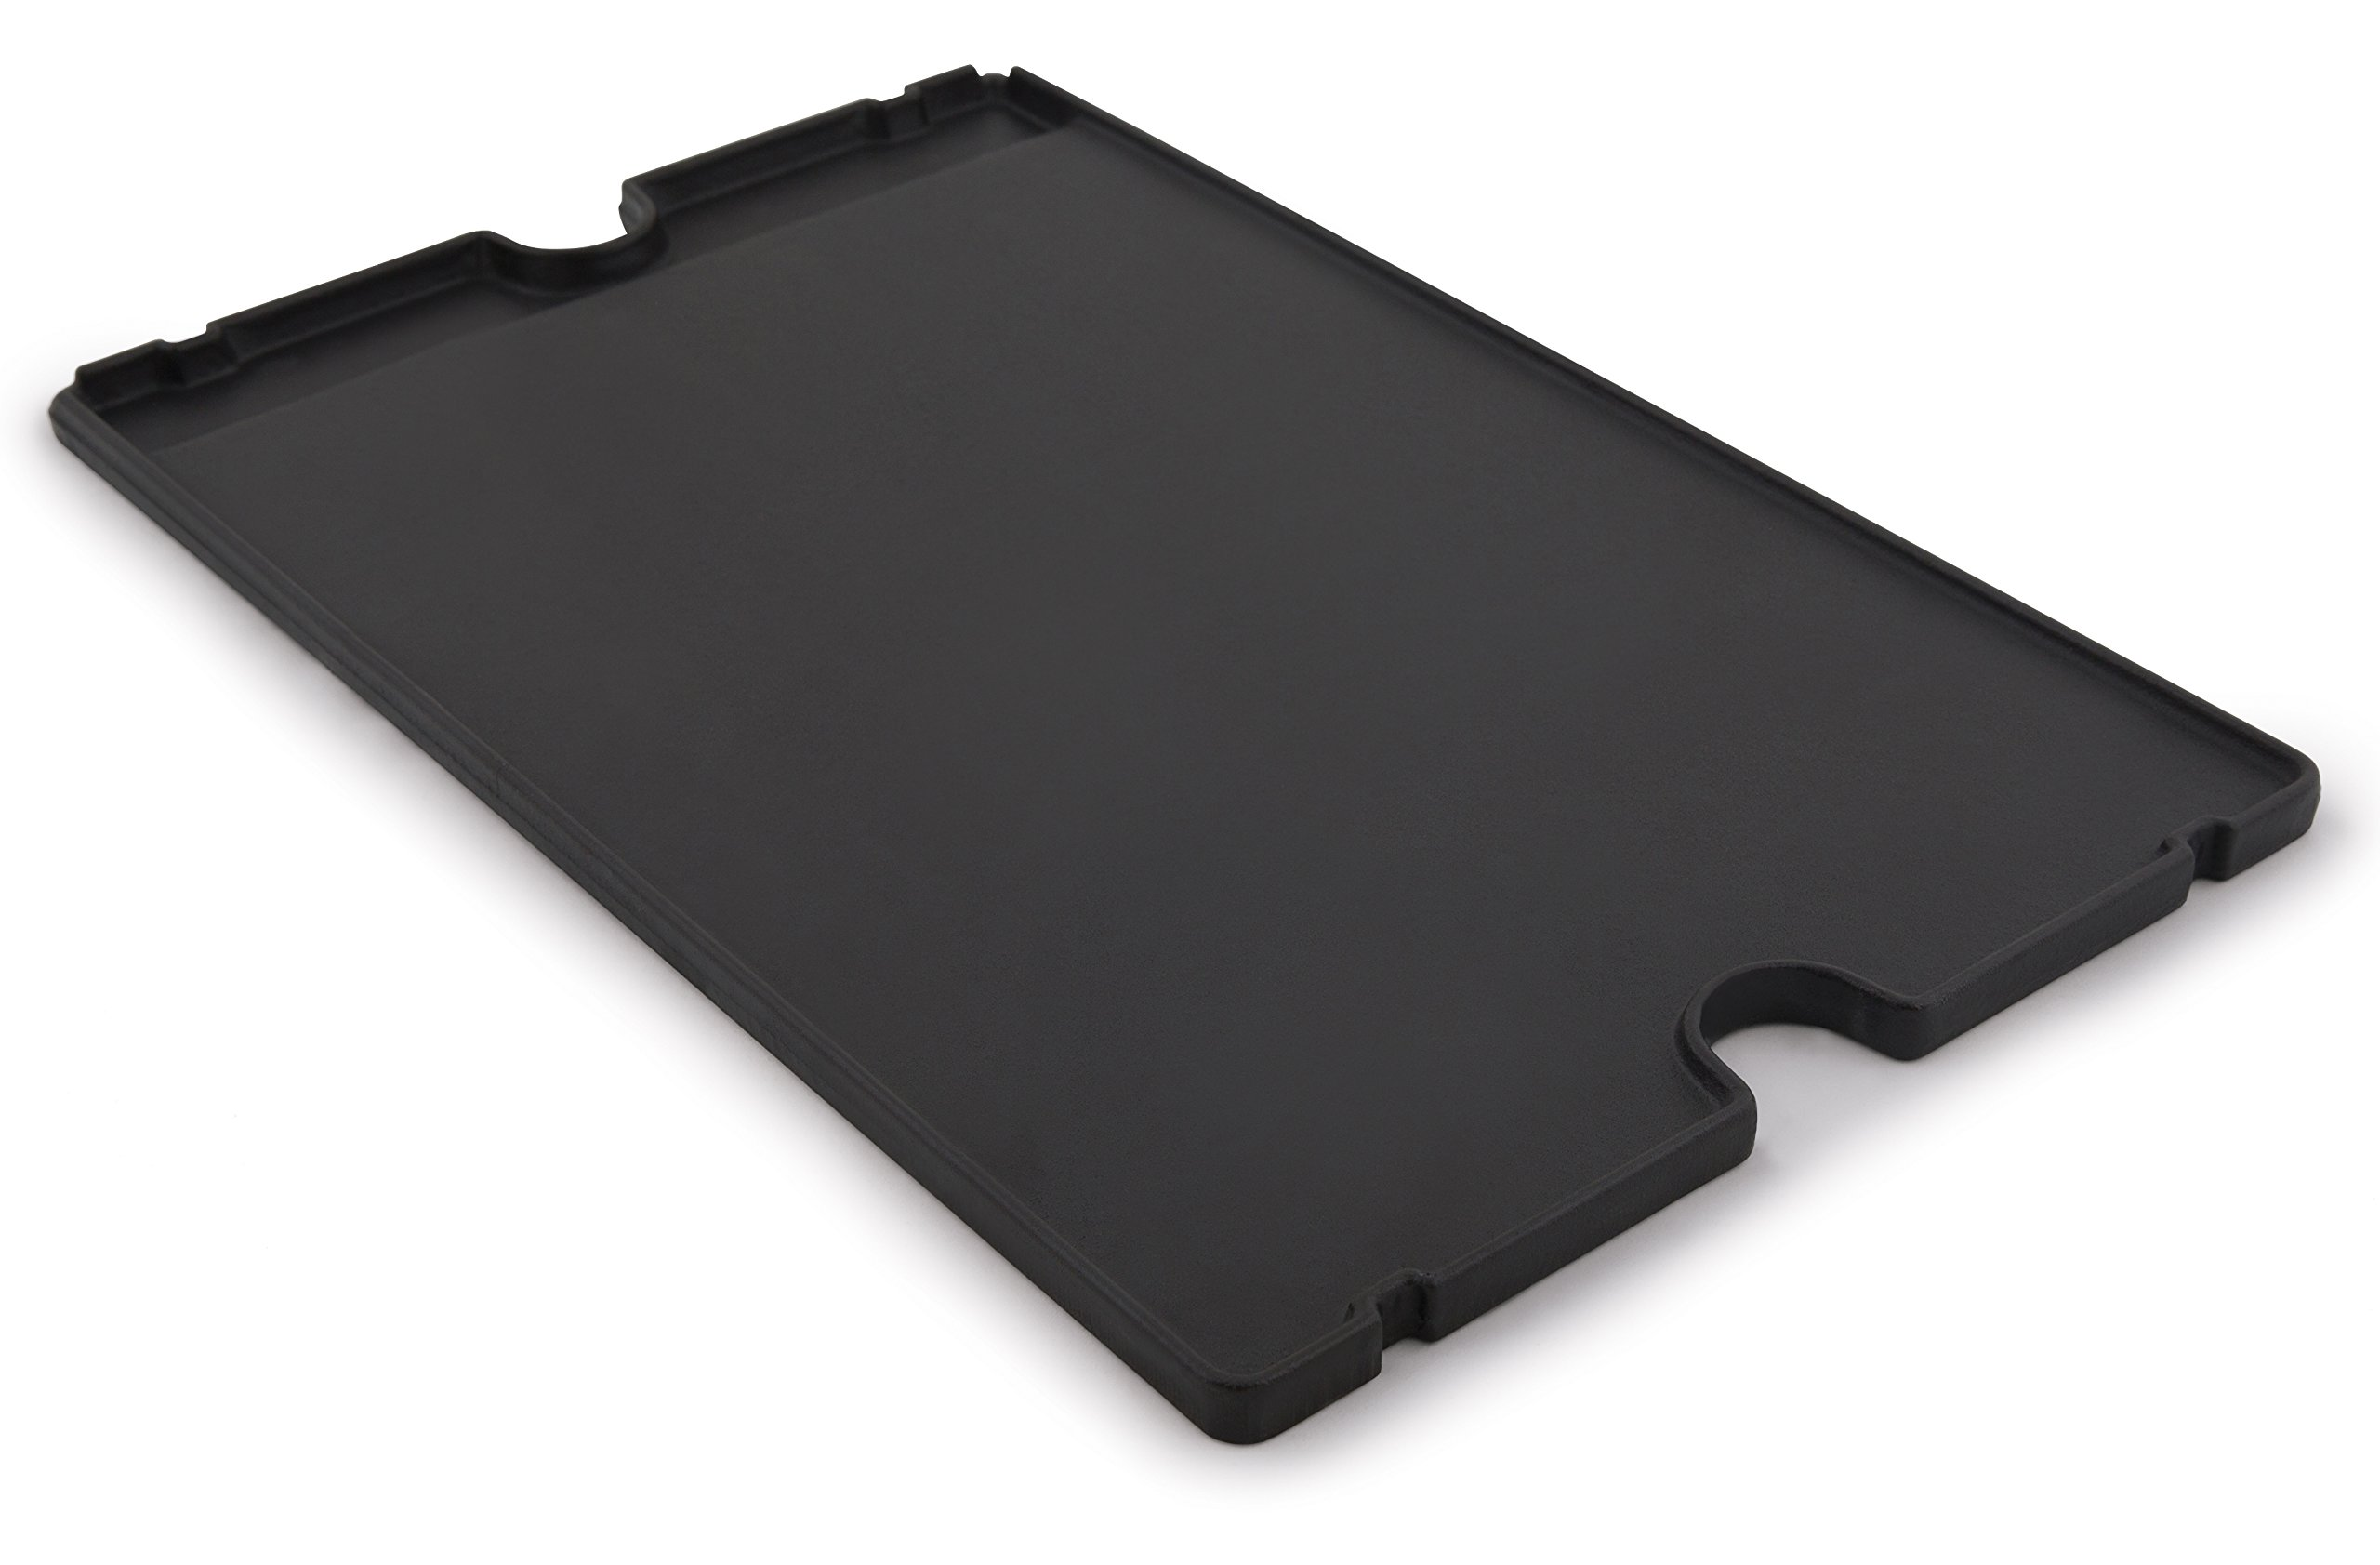 Broil King 11242 Exact Fit Cast Iron Griddle for the Broil King Baron Series Gas Grill by Broil King (Image #1)